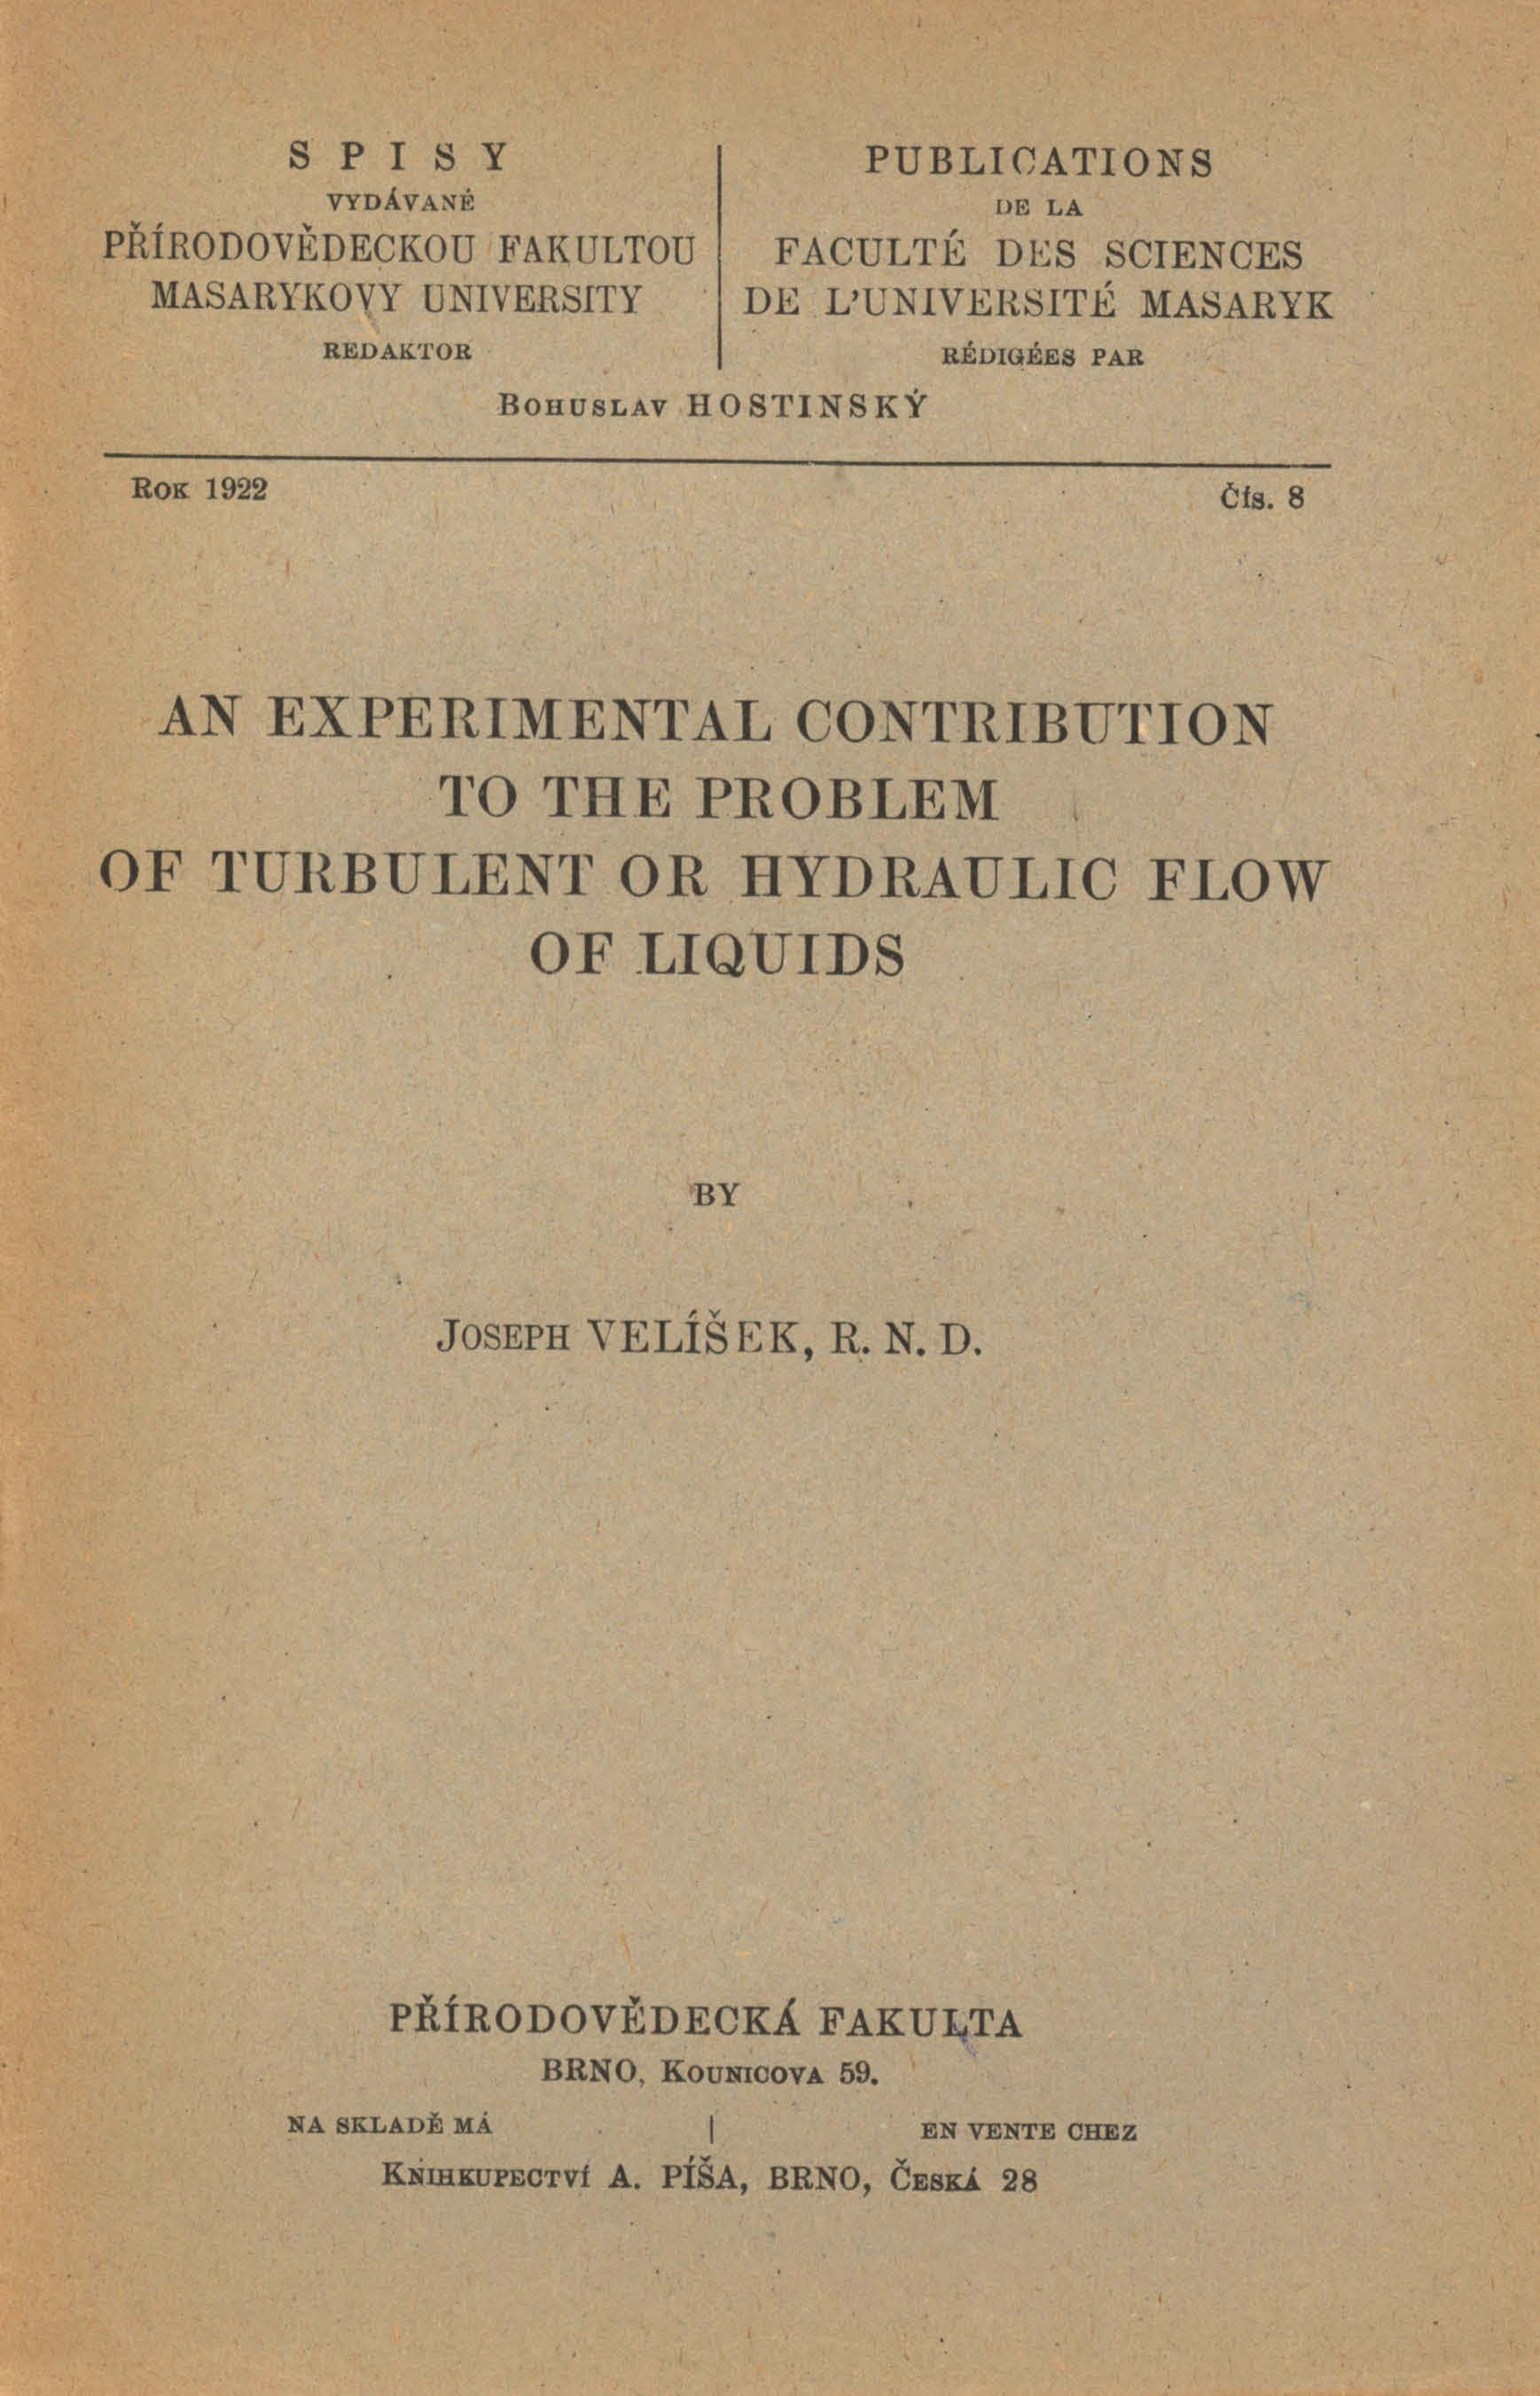 Obálka pro An experimental contribution to the problem of turbulent of hydraulic flow of liquids